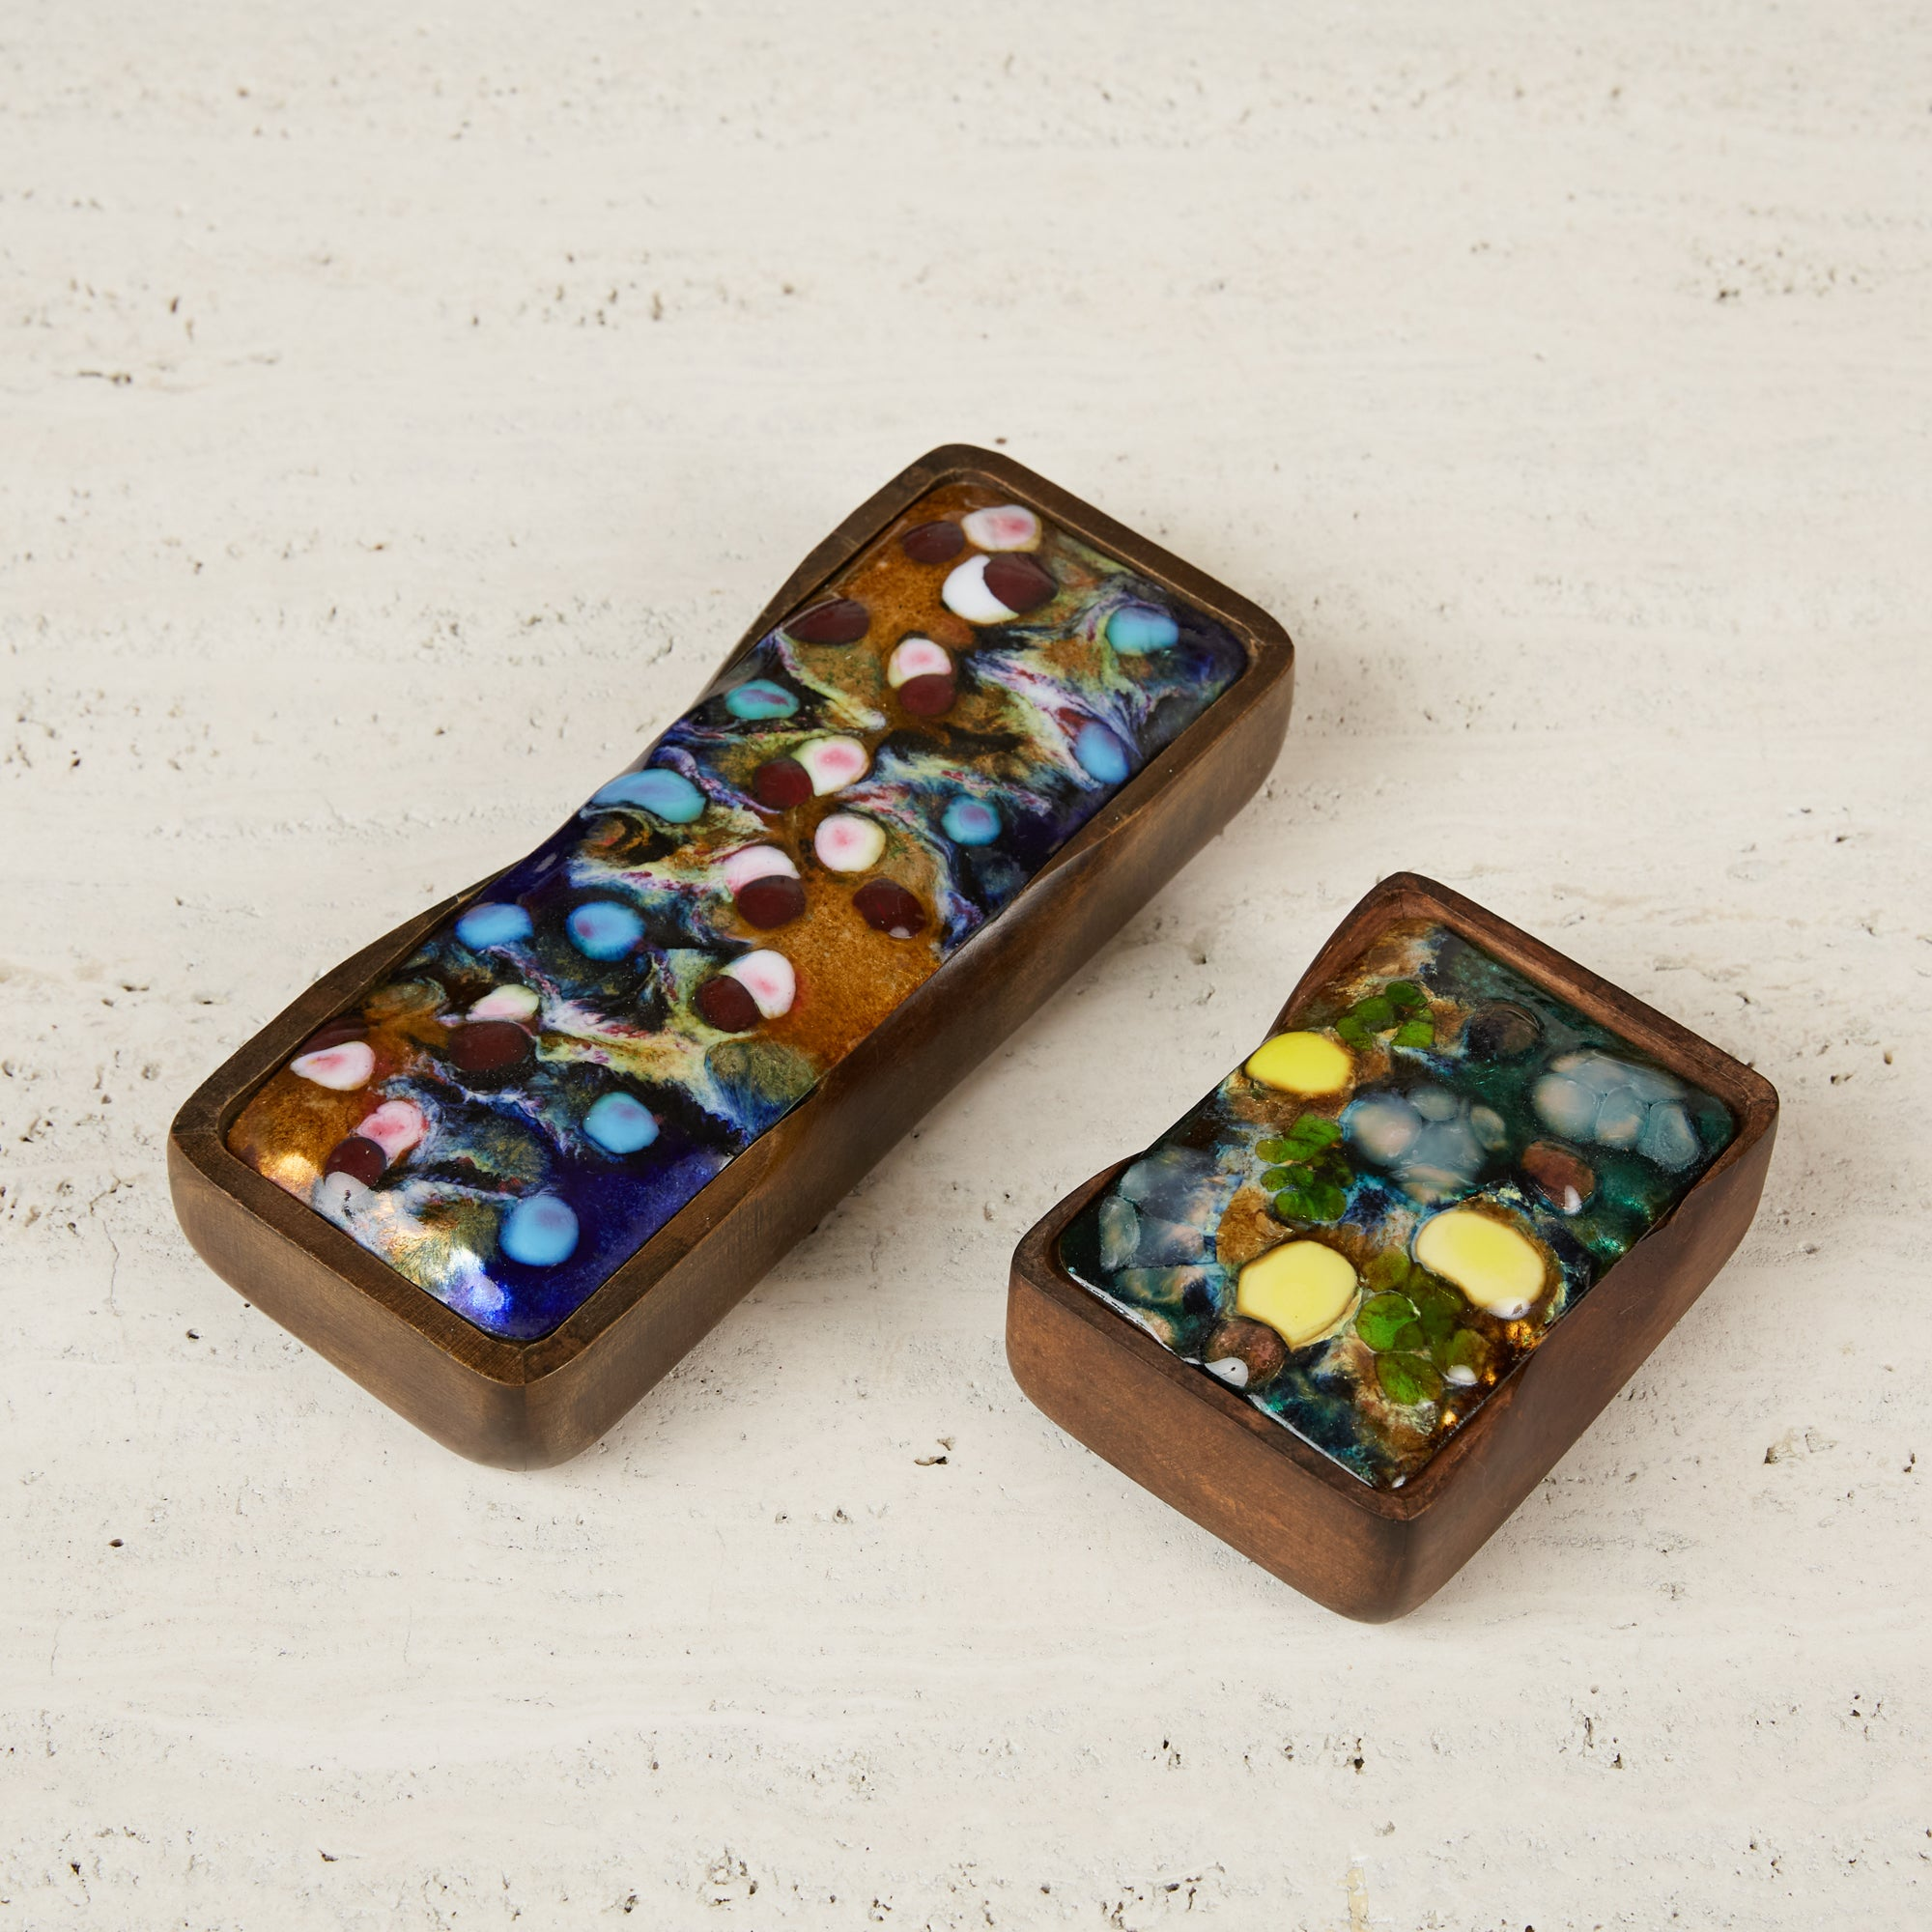 Sculpted Studio Craft Wooden Box with Multicolored Enamel Top by J. Capo